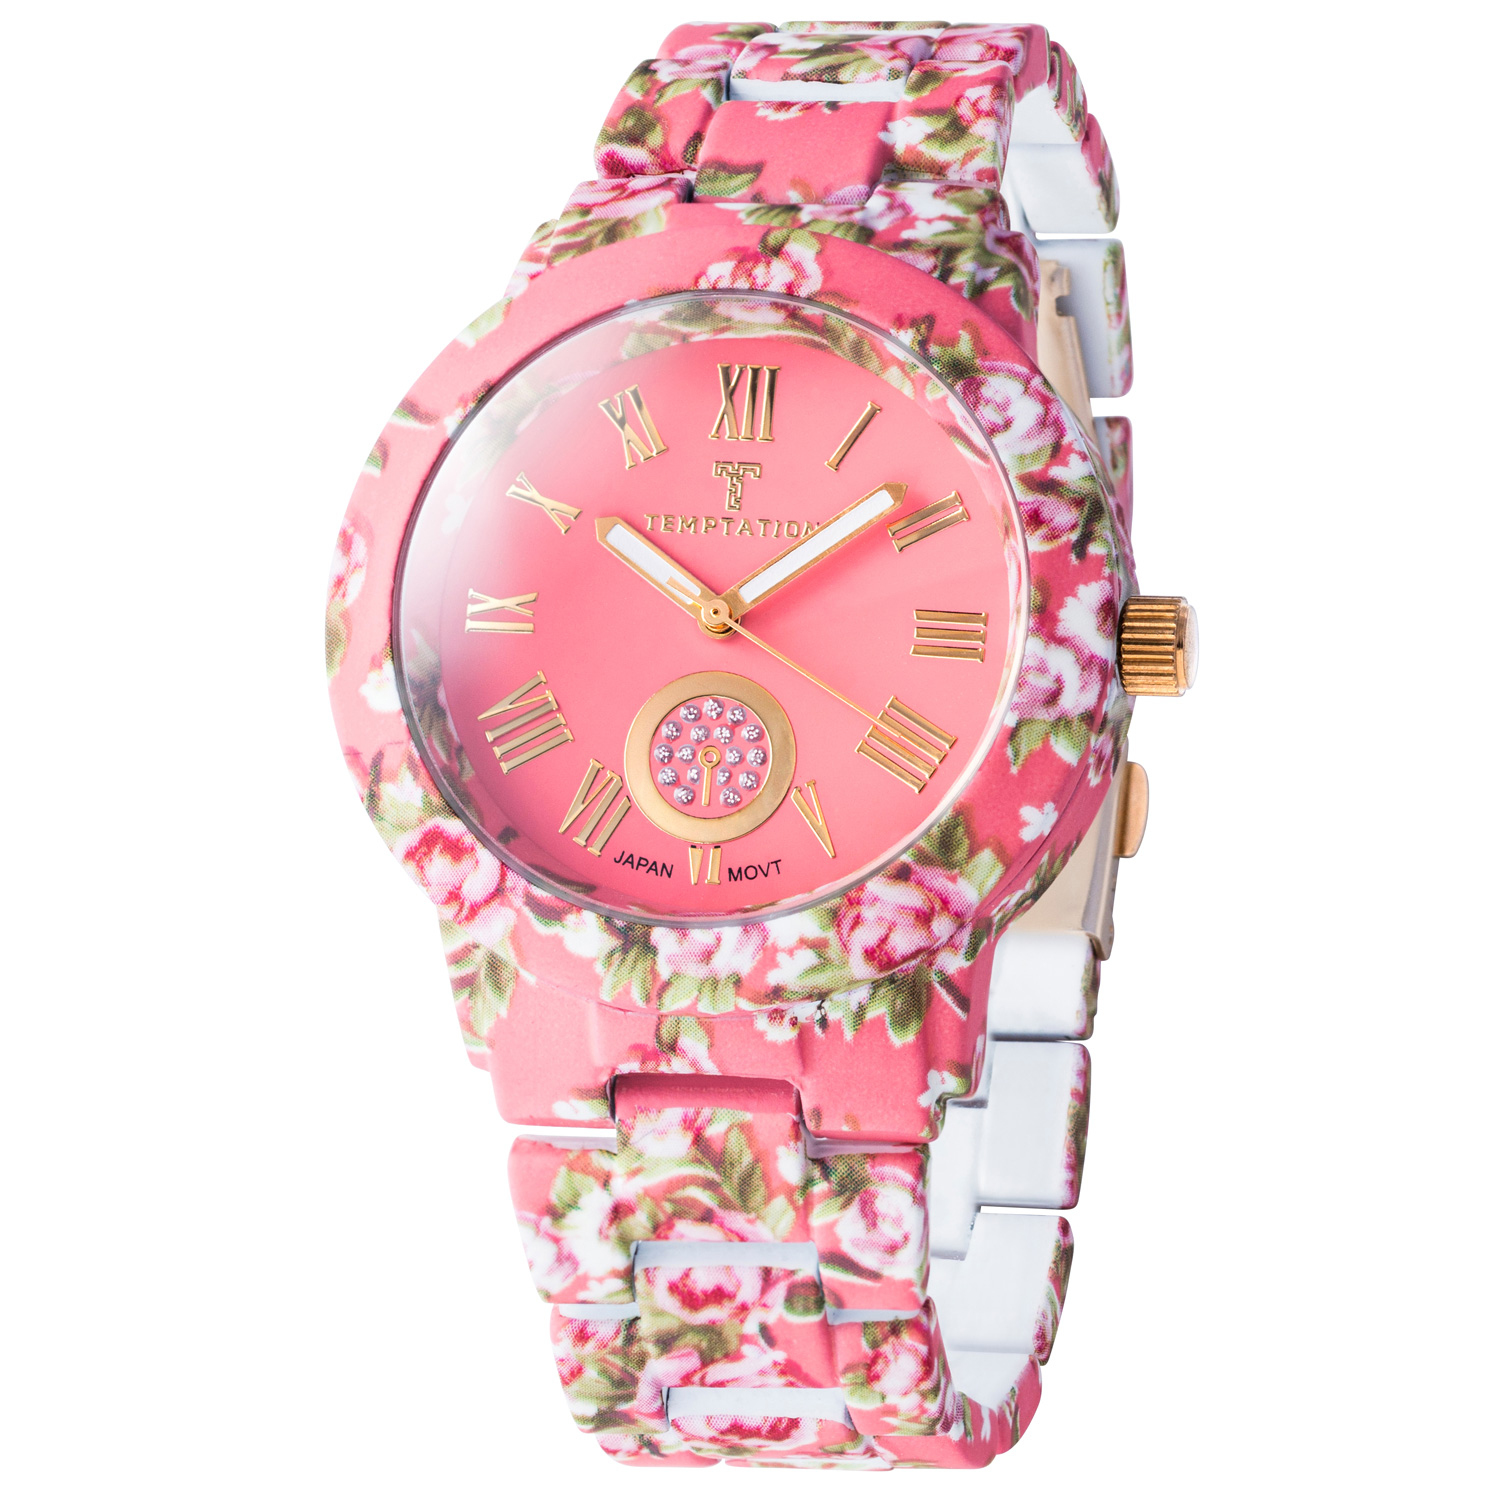 Temptation Watch TEA-2015-01 Multicolor